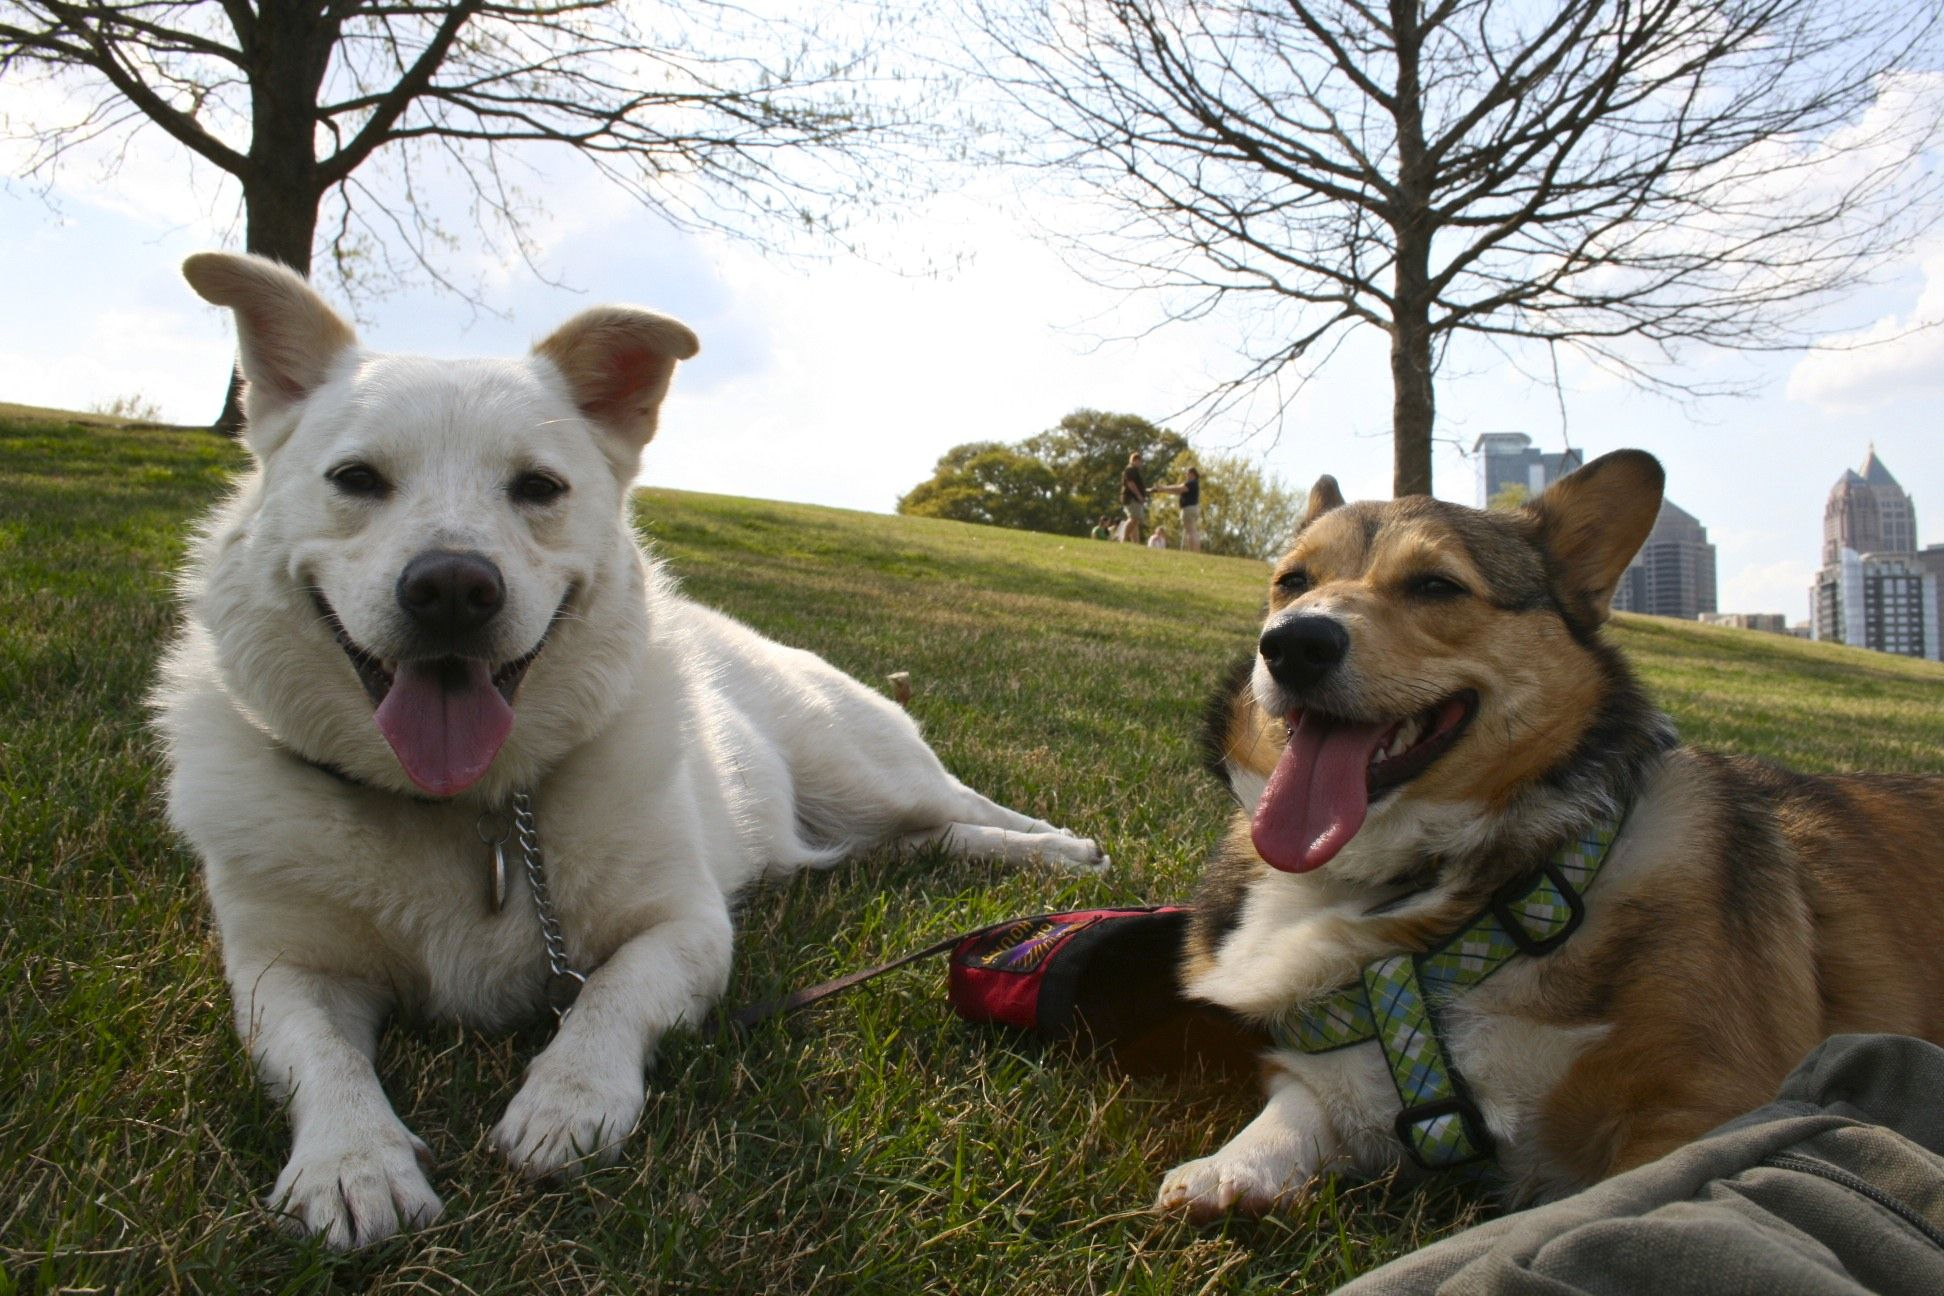 You have long legs, but that's okay. We can still be friends and it will be wondaful!!!!!! #corgi